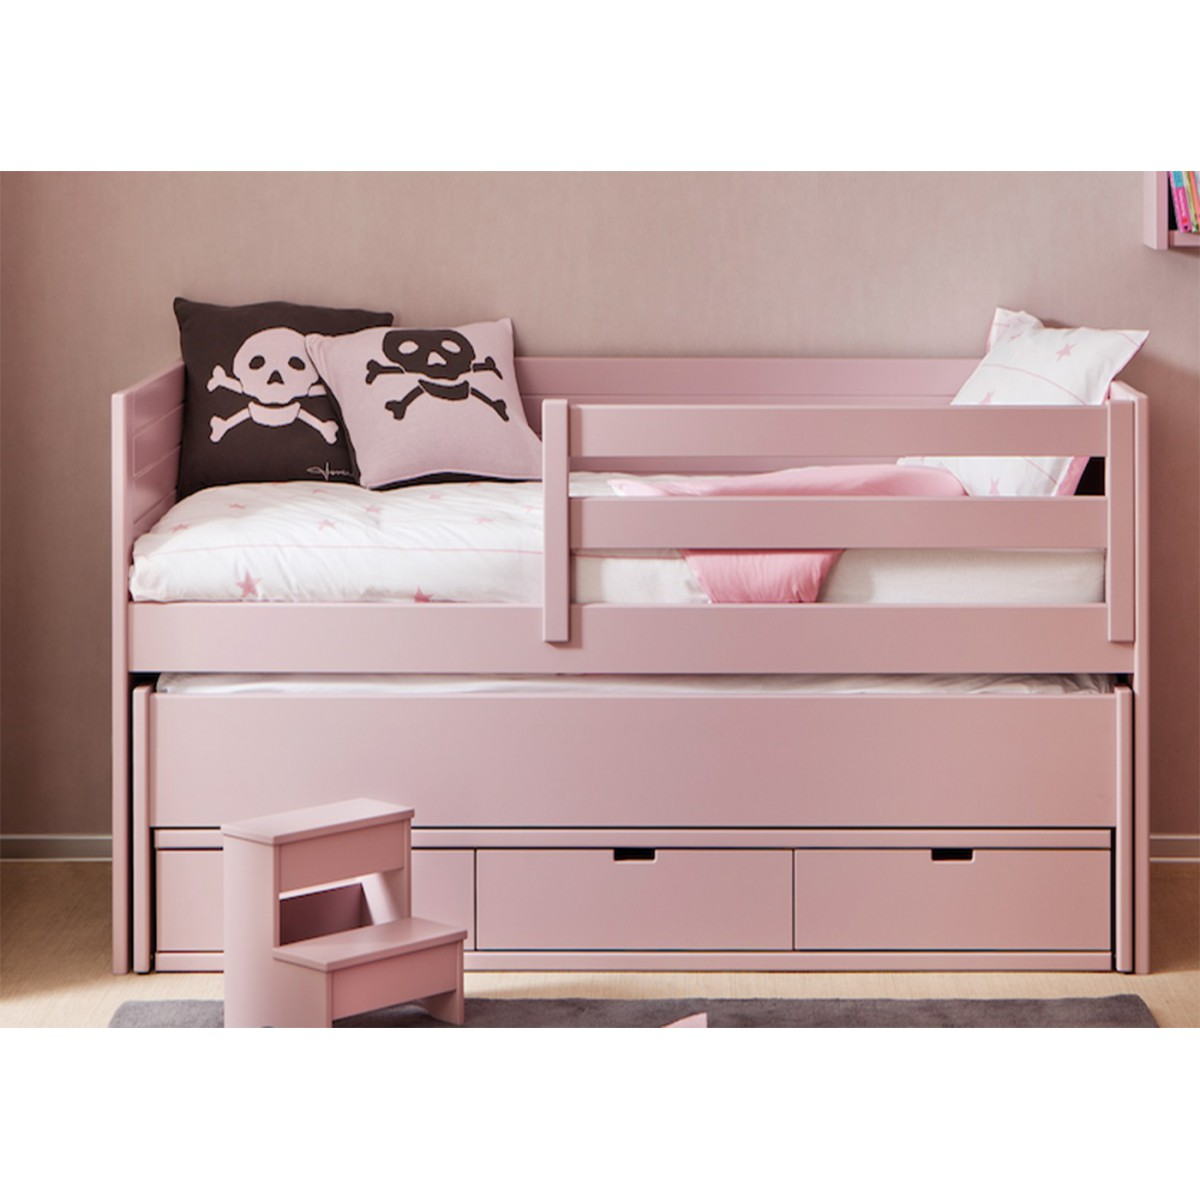 lit gigogne pour enfant avec 3 tiroirs de rangement sign asoral. Black Bedroom Furniture Sets. Home Design Ideas